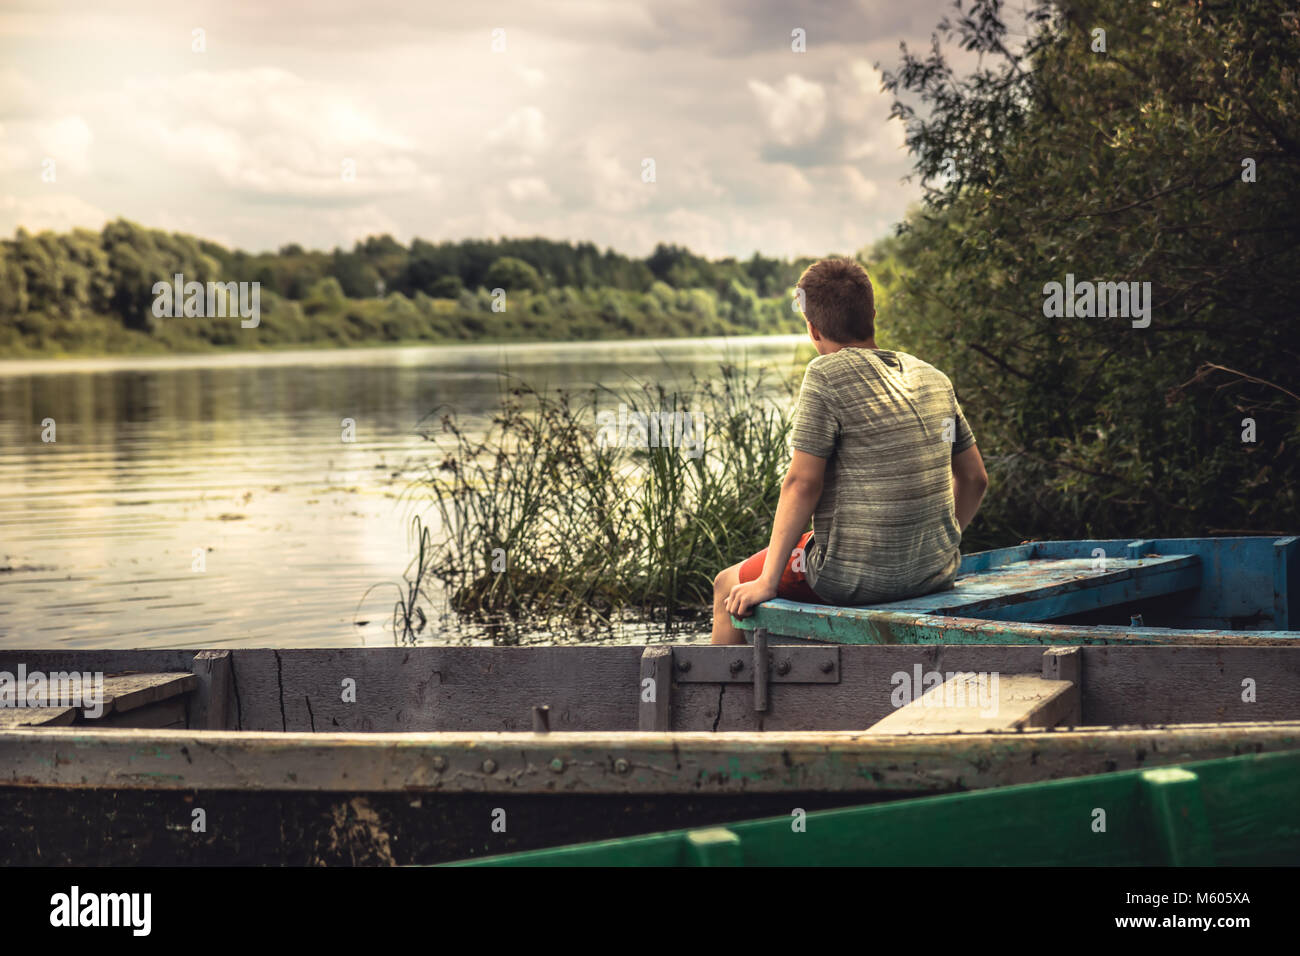 Teenager boy lonely contemplation countryside scenery on river boat during countryside summer holidays - Stock Image